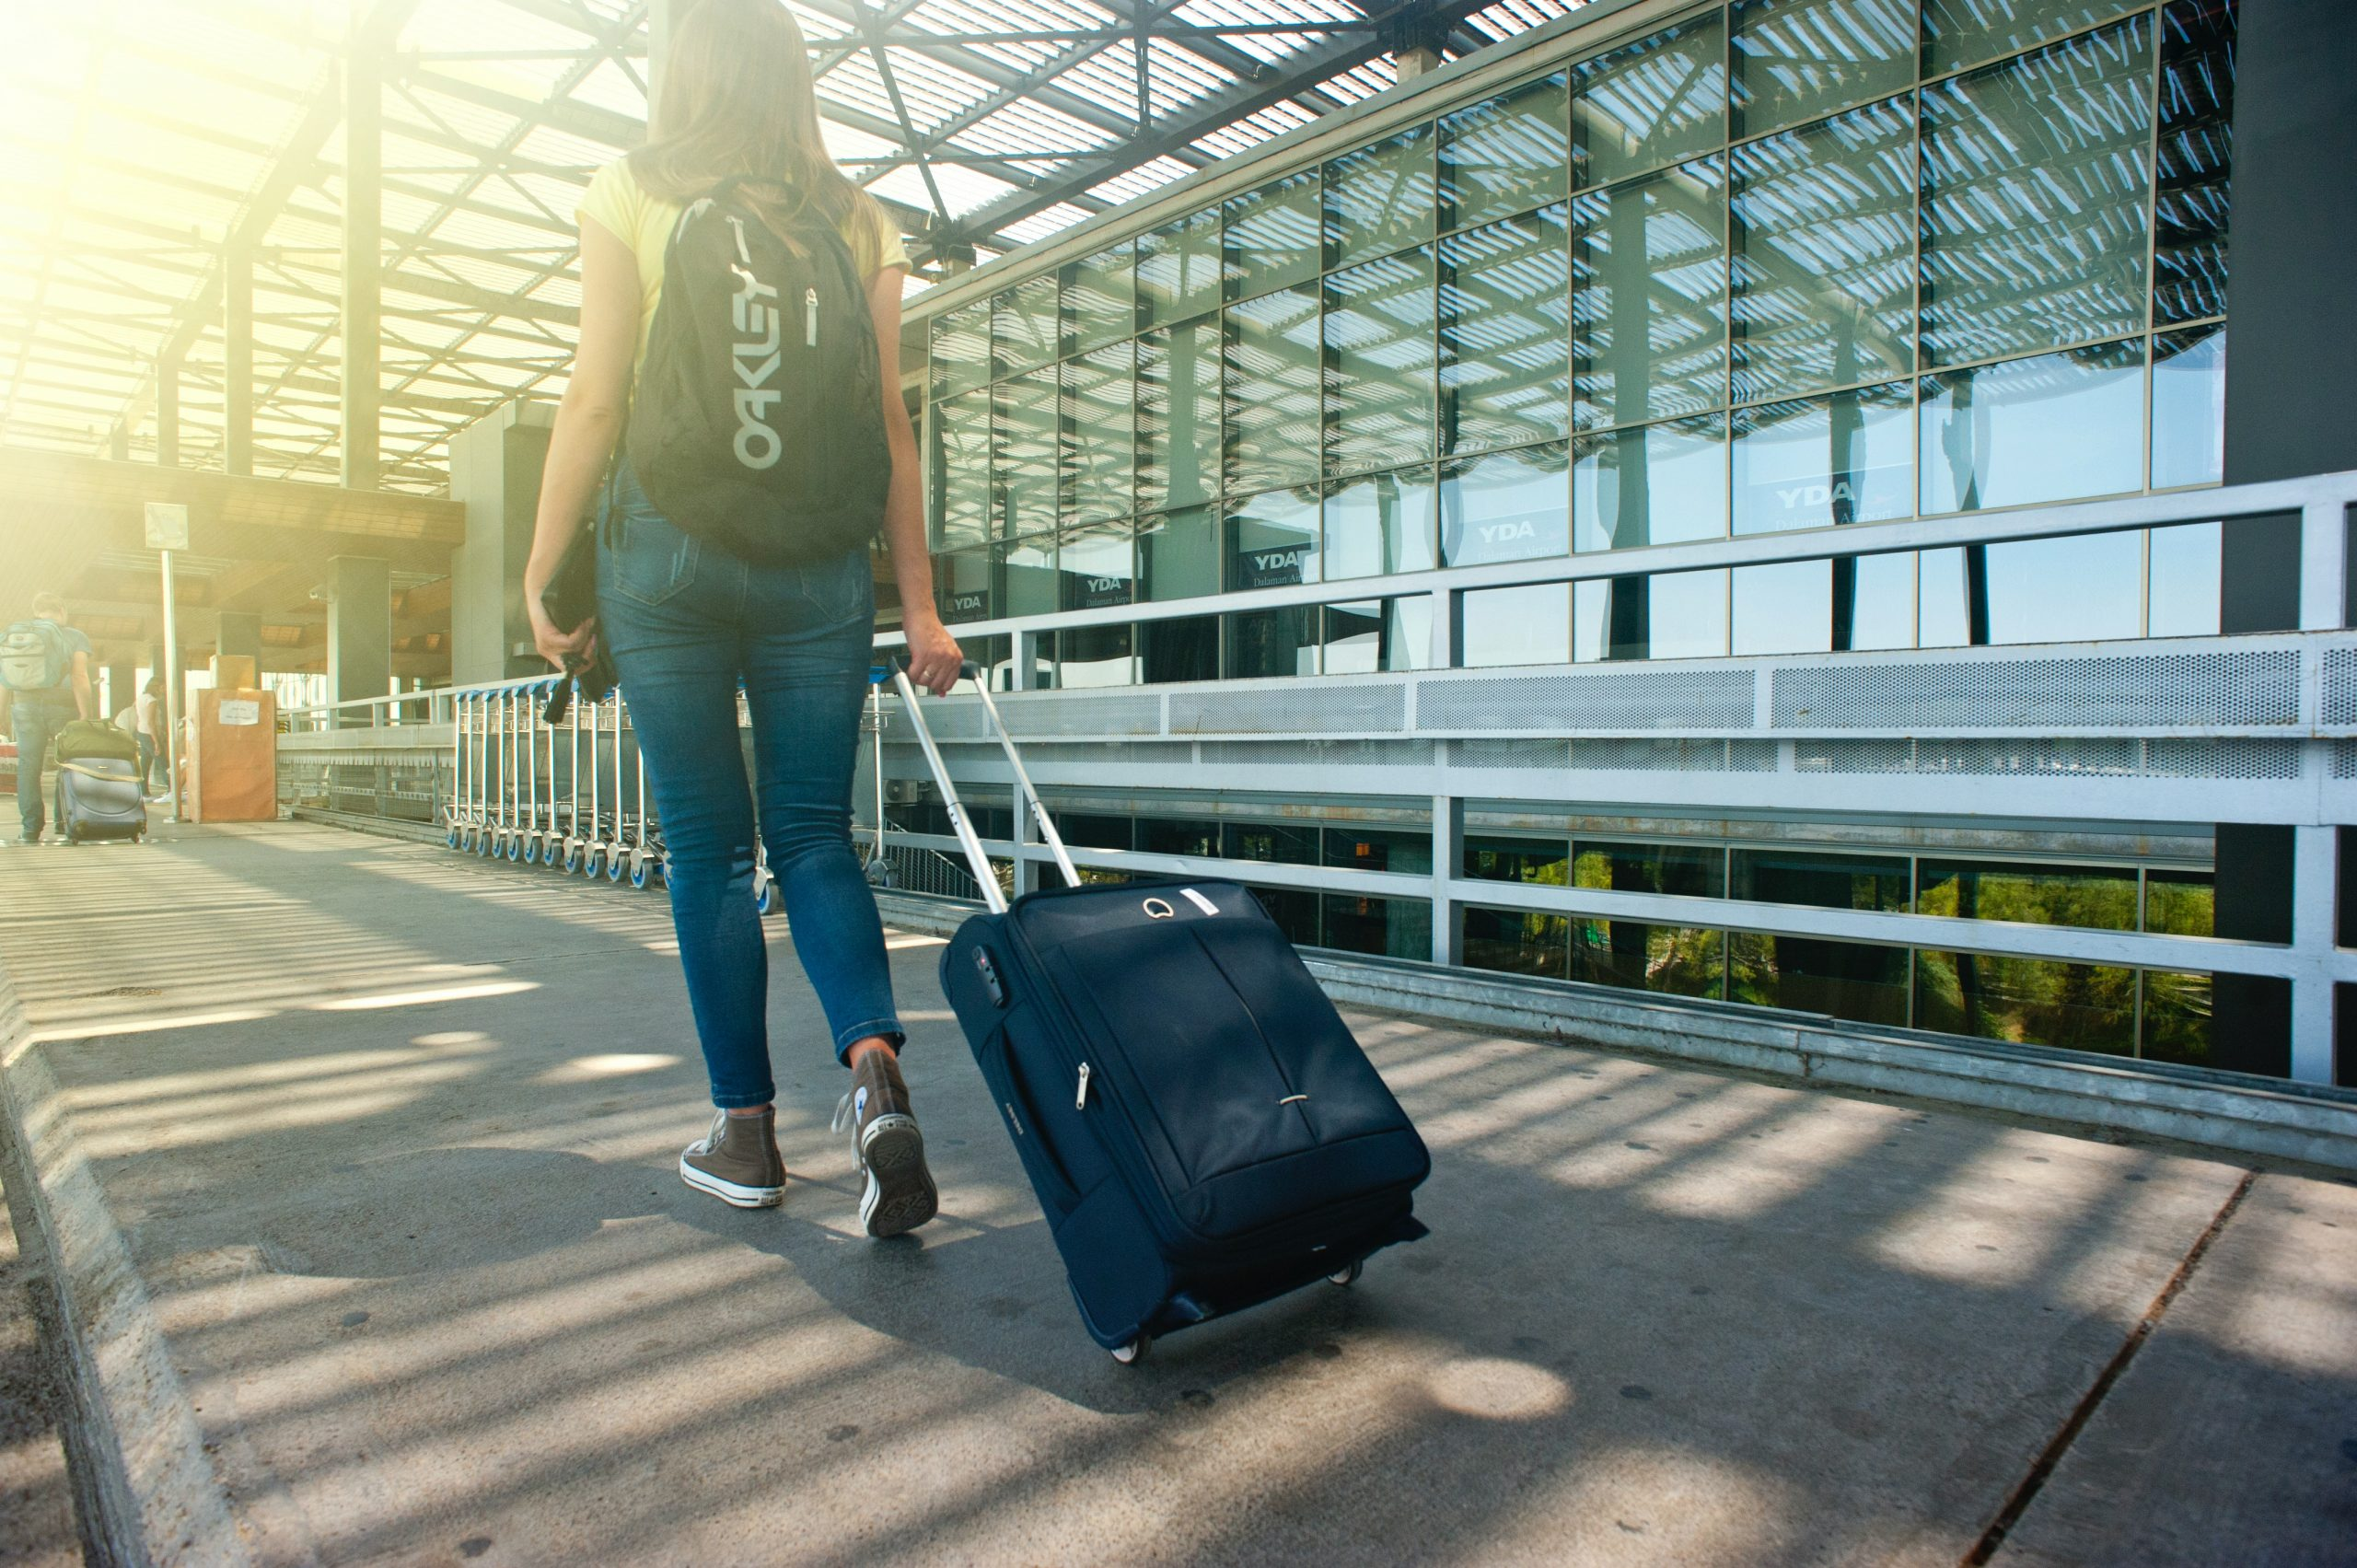 5 Sporty Gadgets To Take With You While Traveling